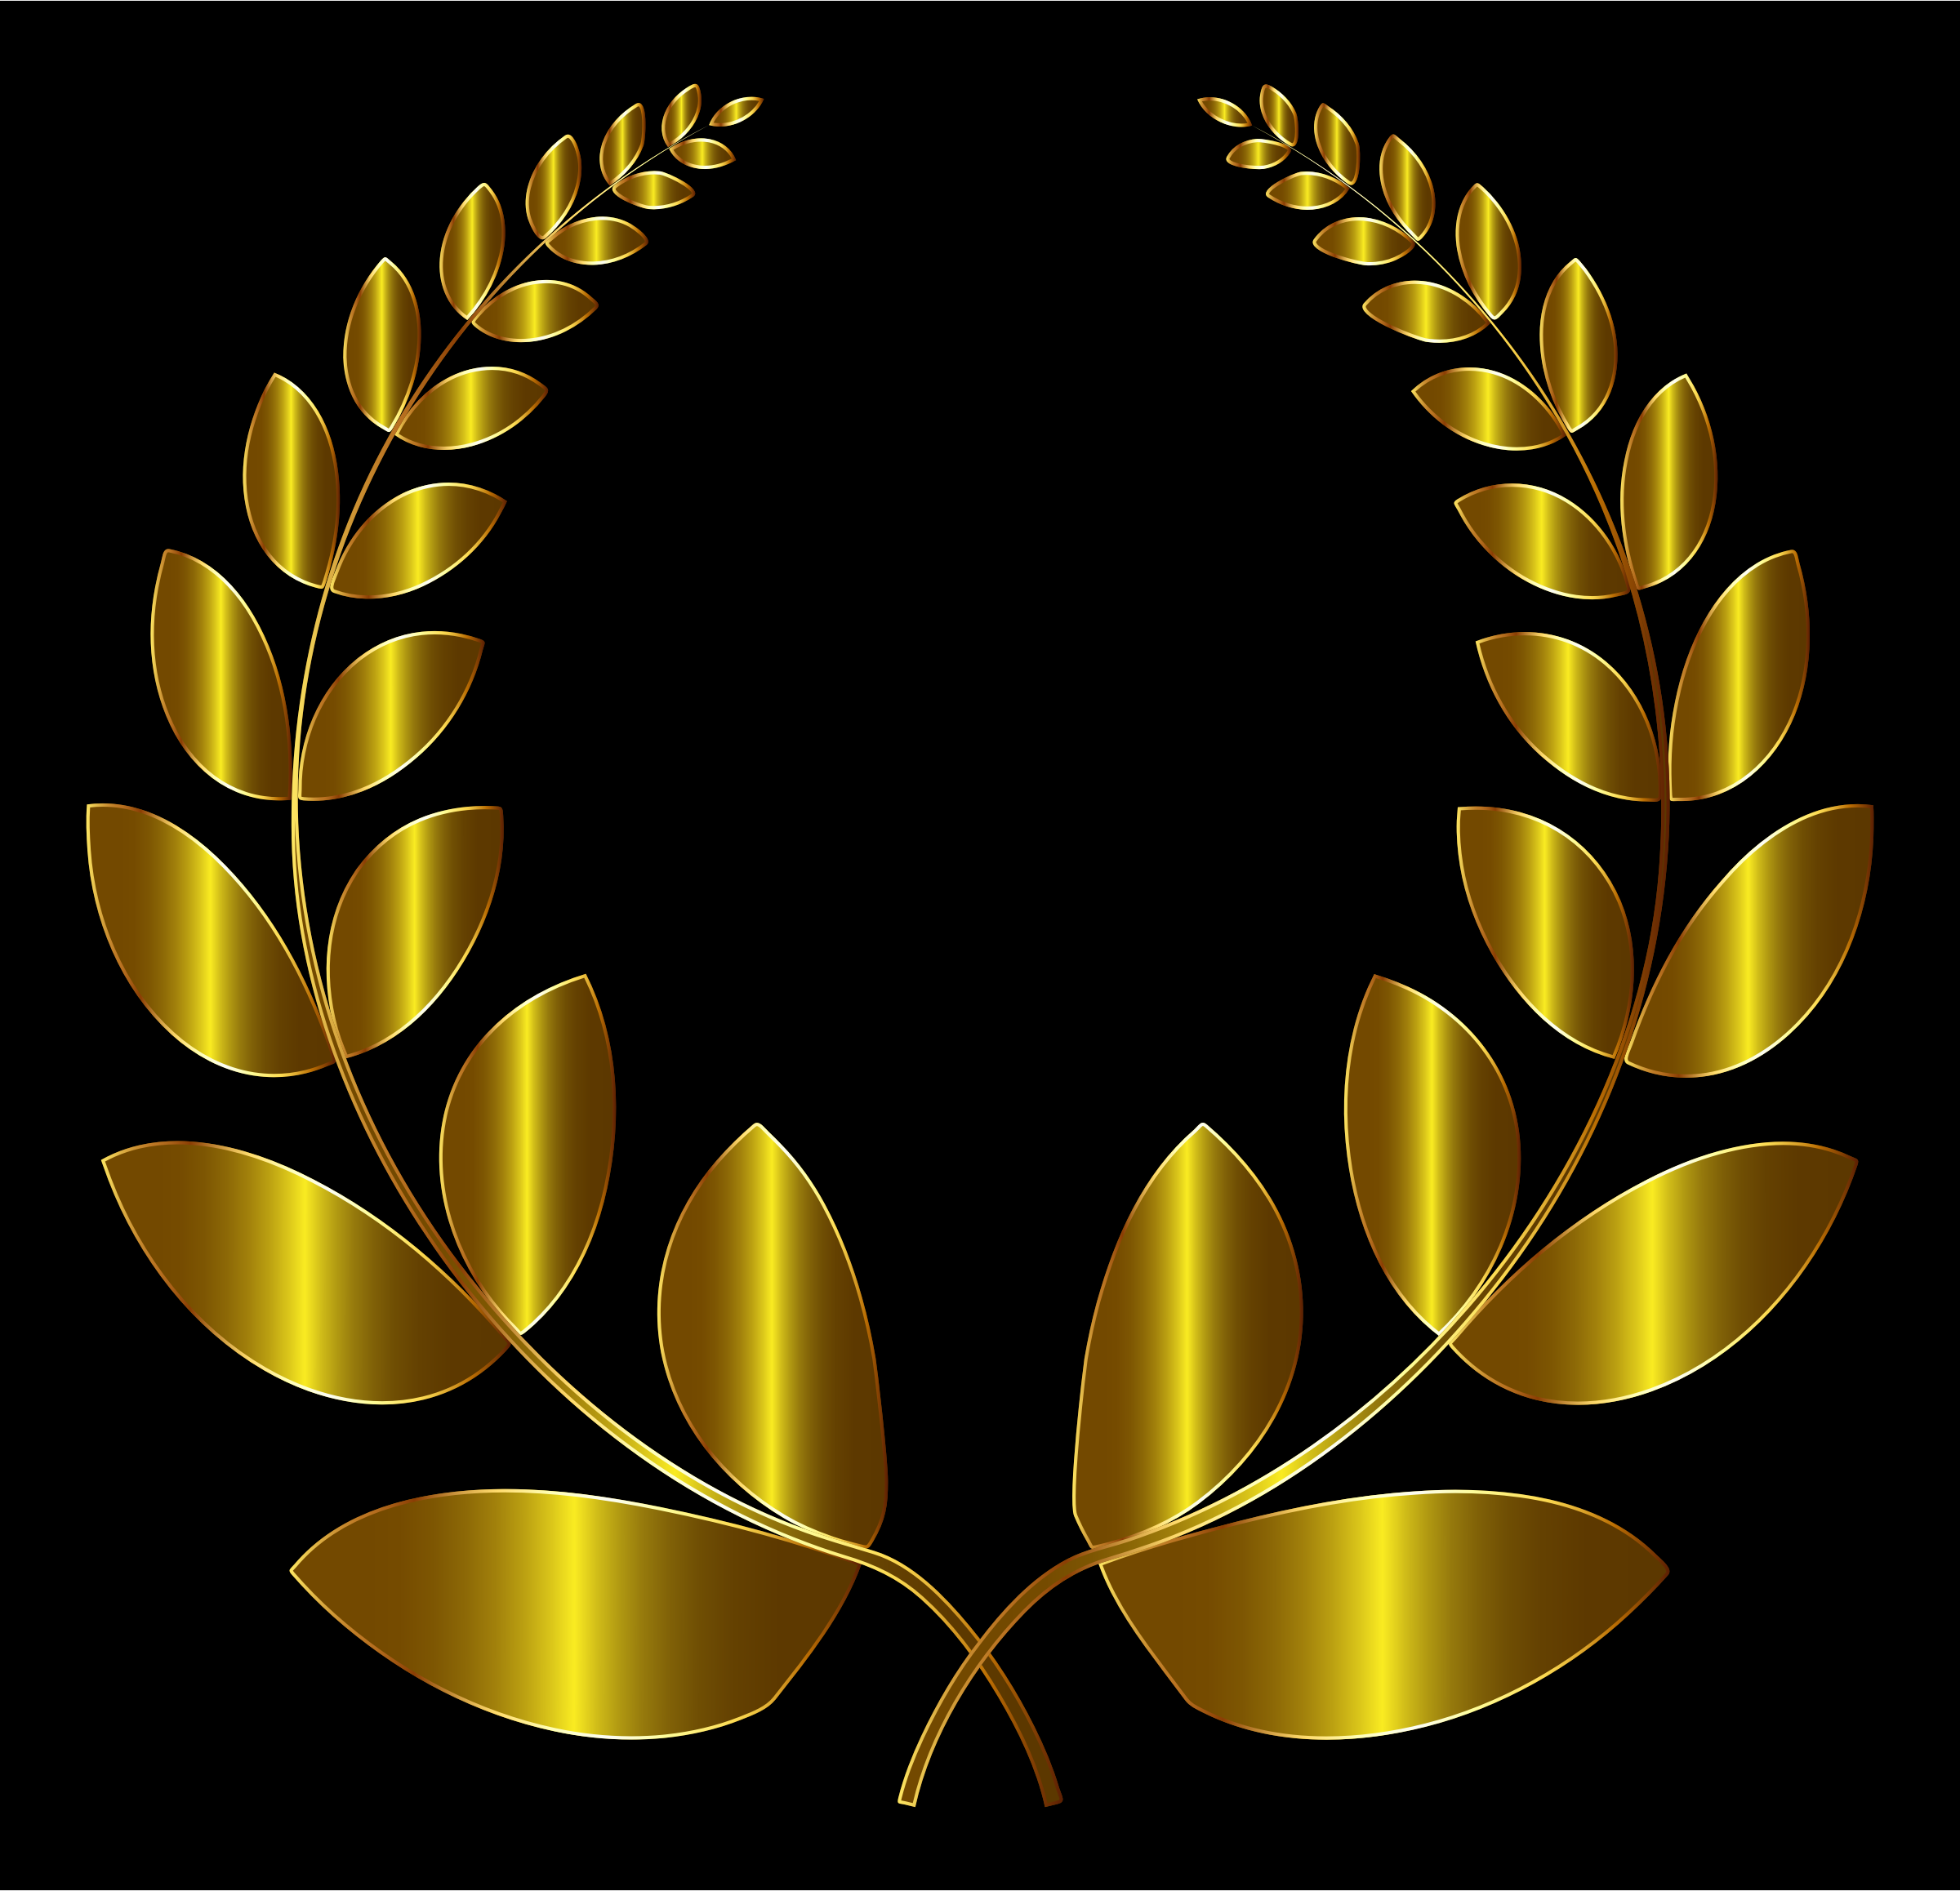 Gold Laurel Wreath 3 by GDJ